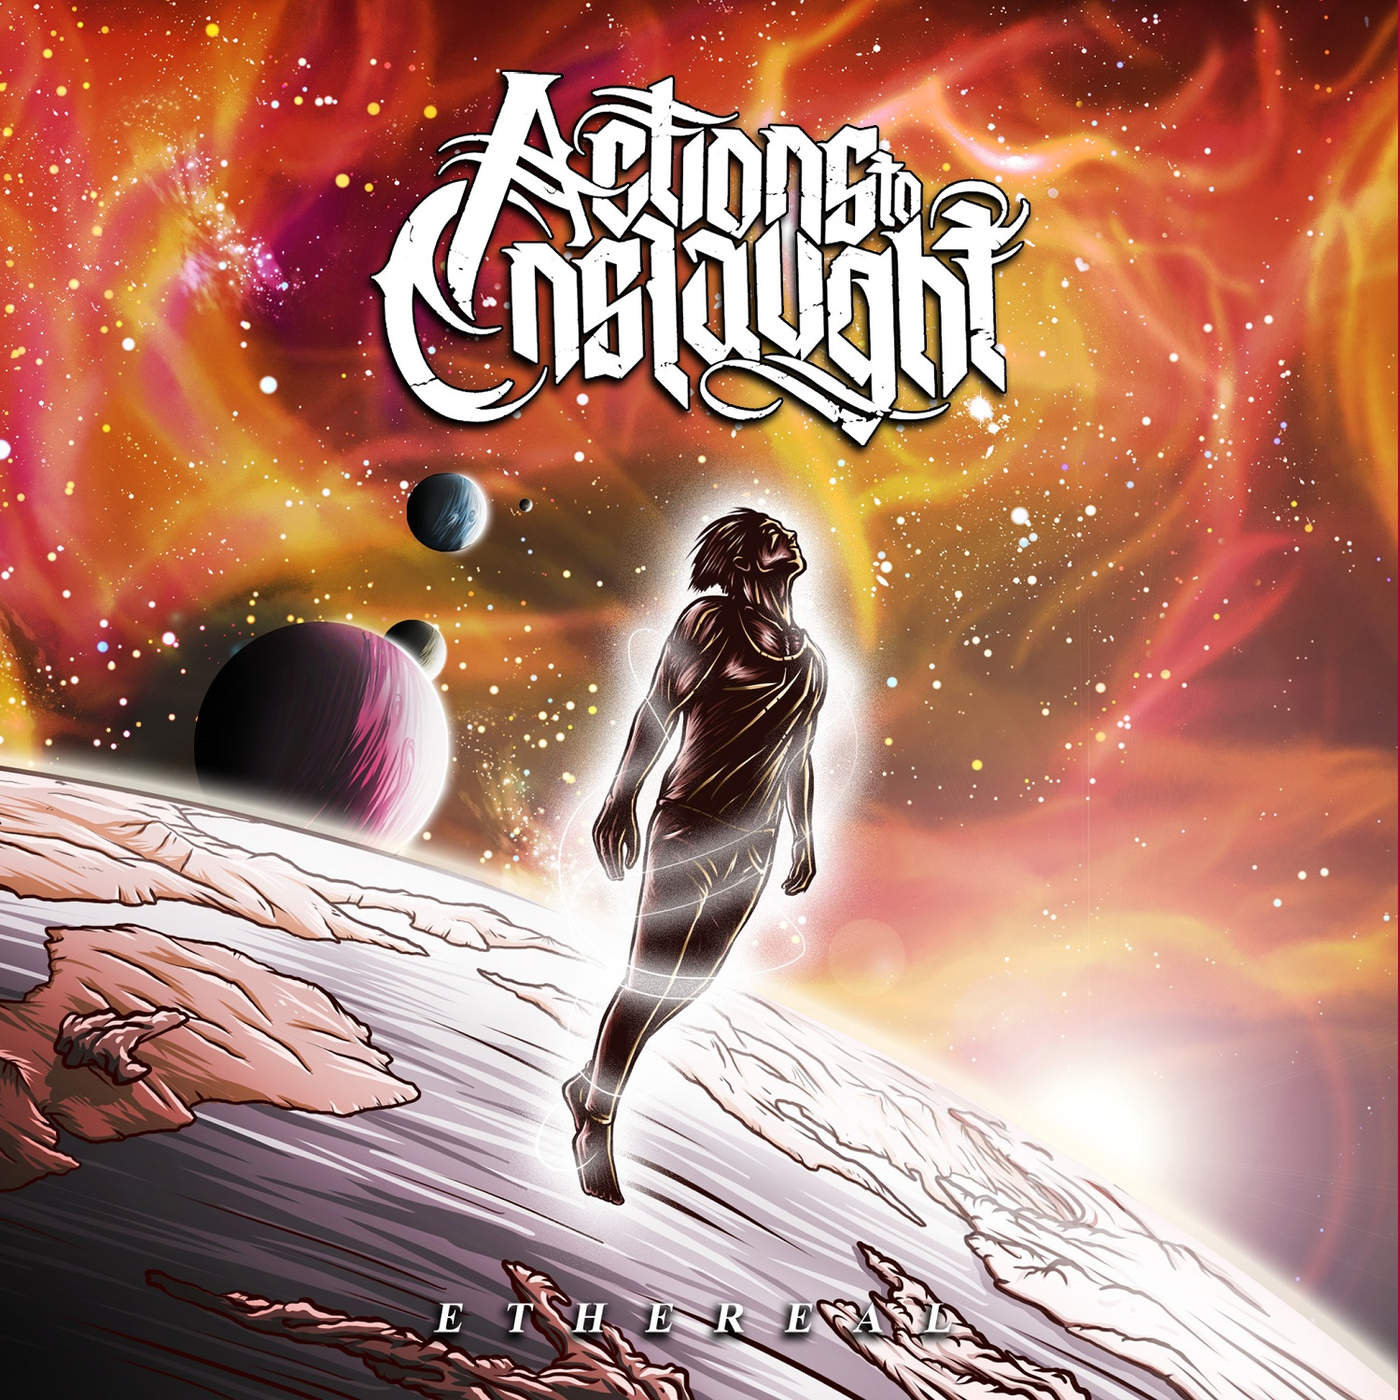 Actions to Onslaught - Ethereal (2014)